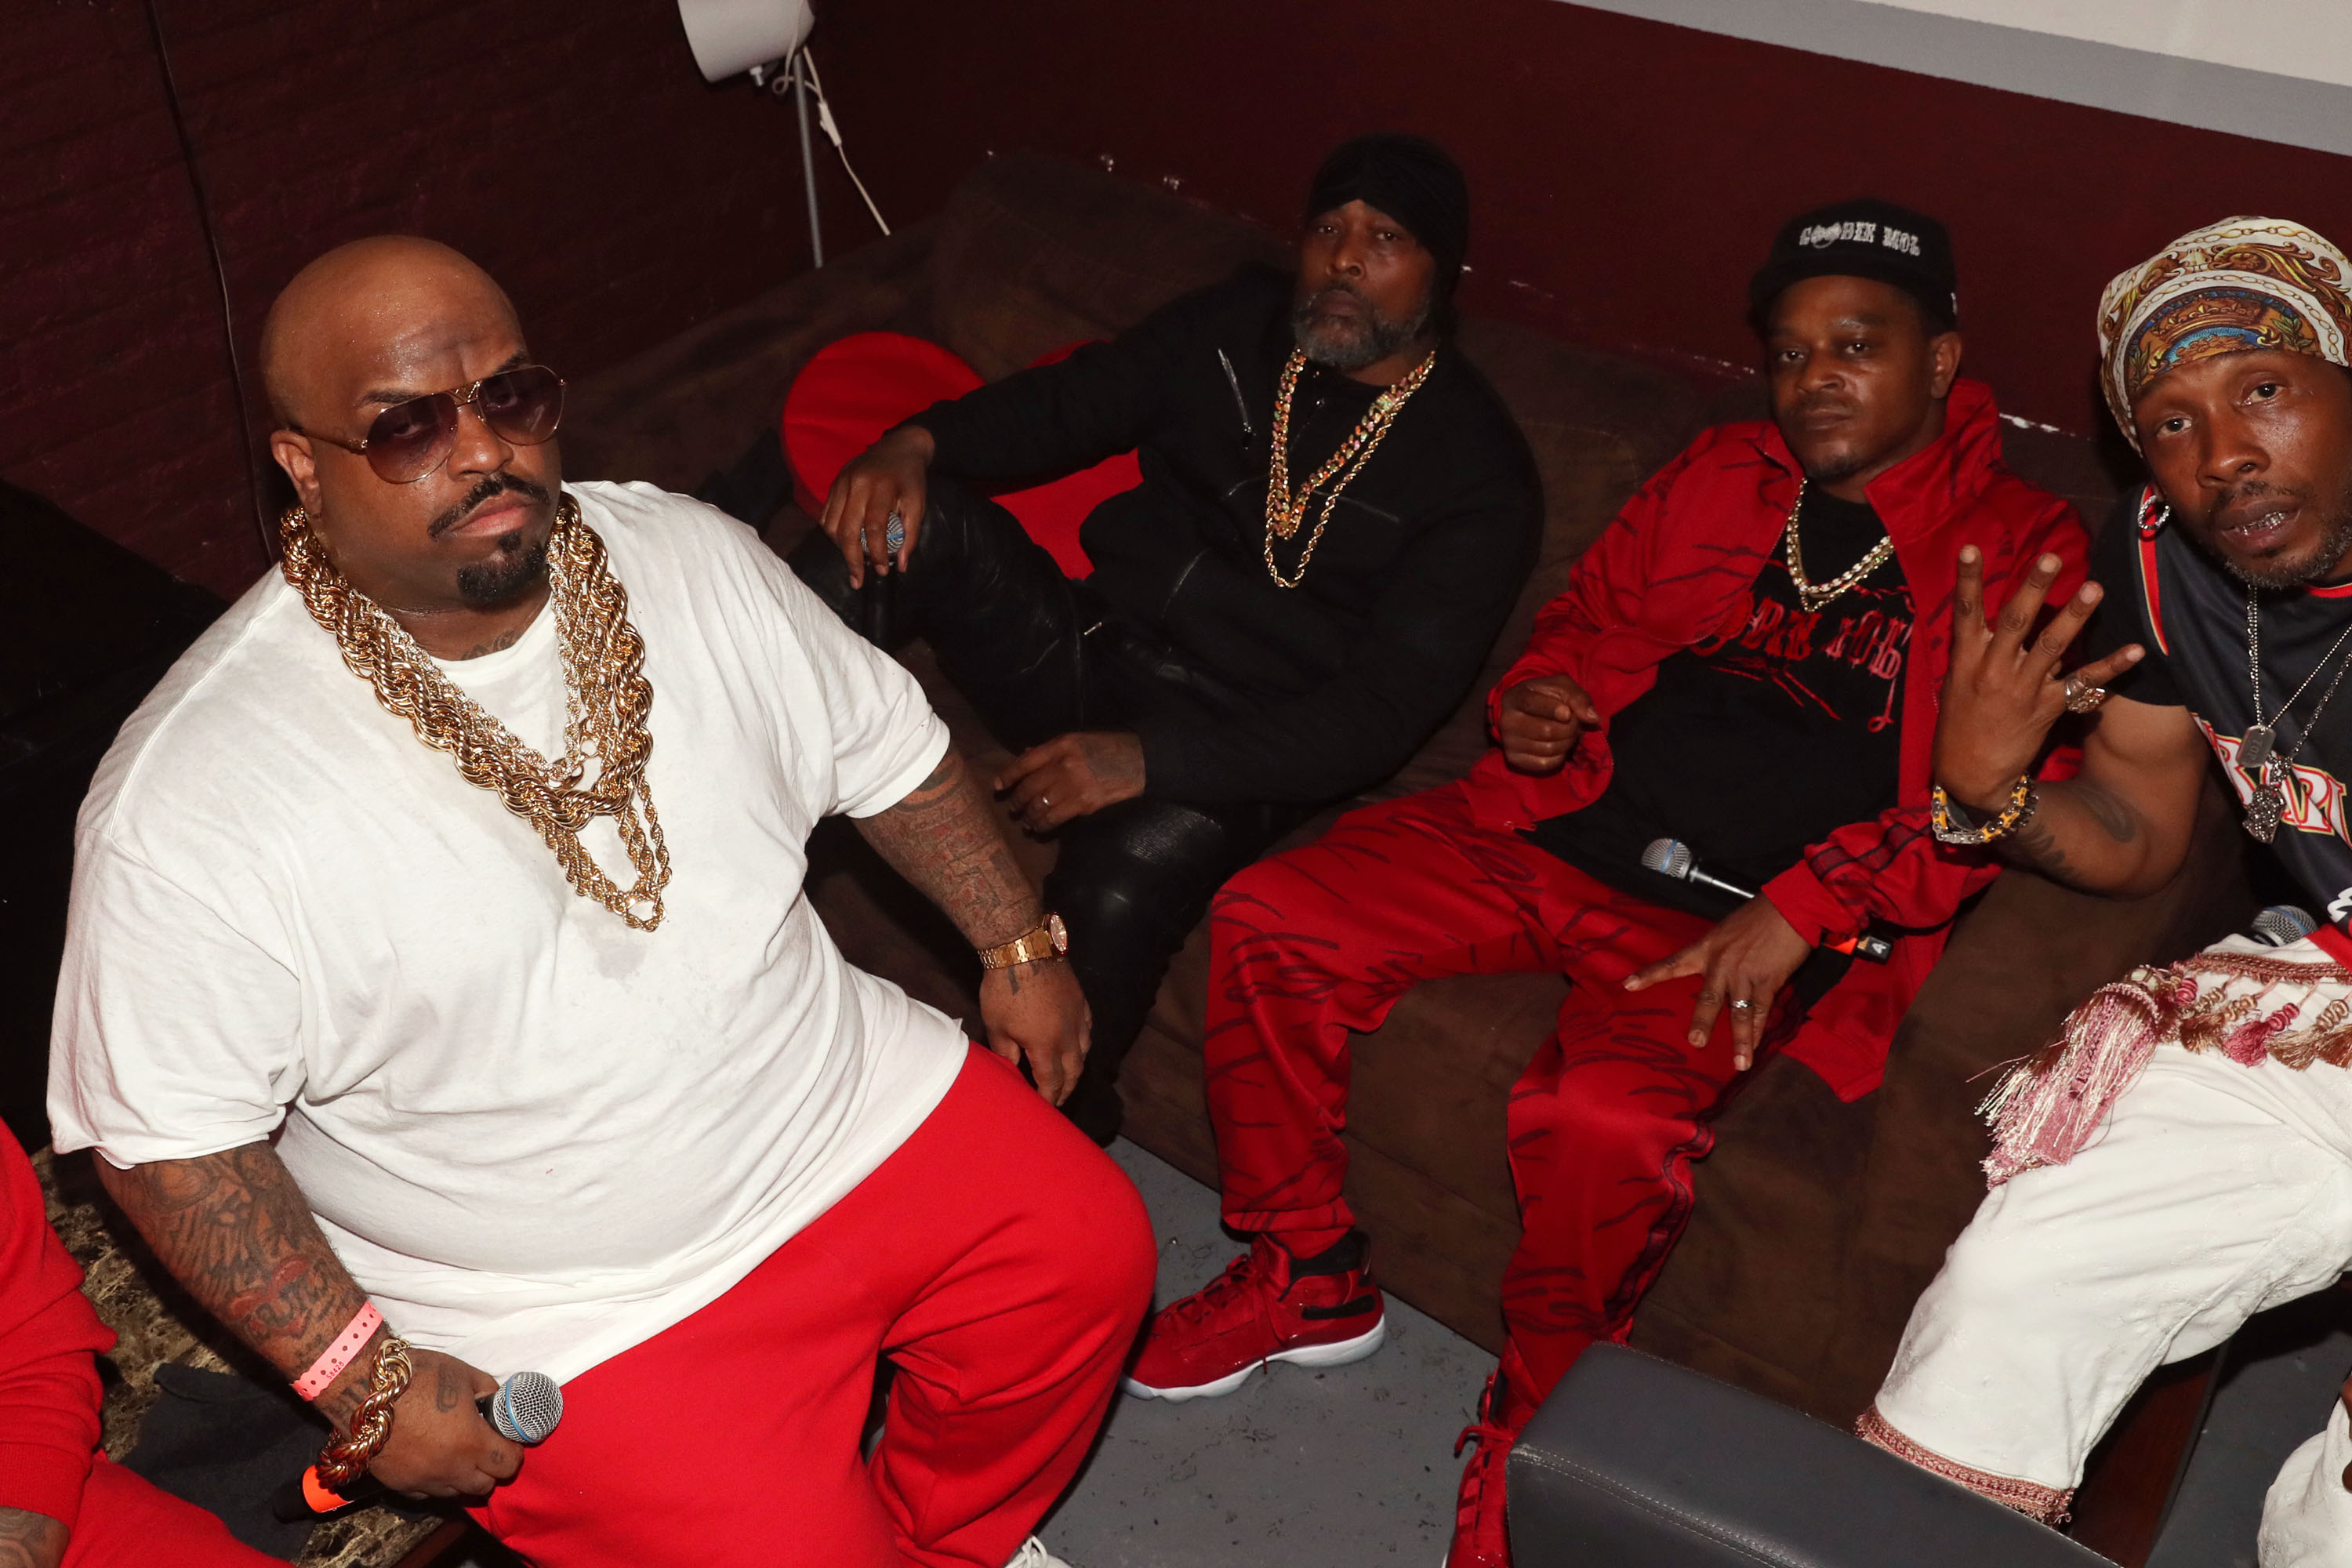 Free Goodie Mob show will aim to shine spotlight on evolving East Point